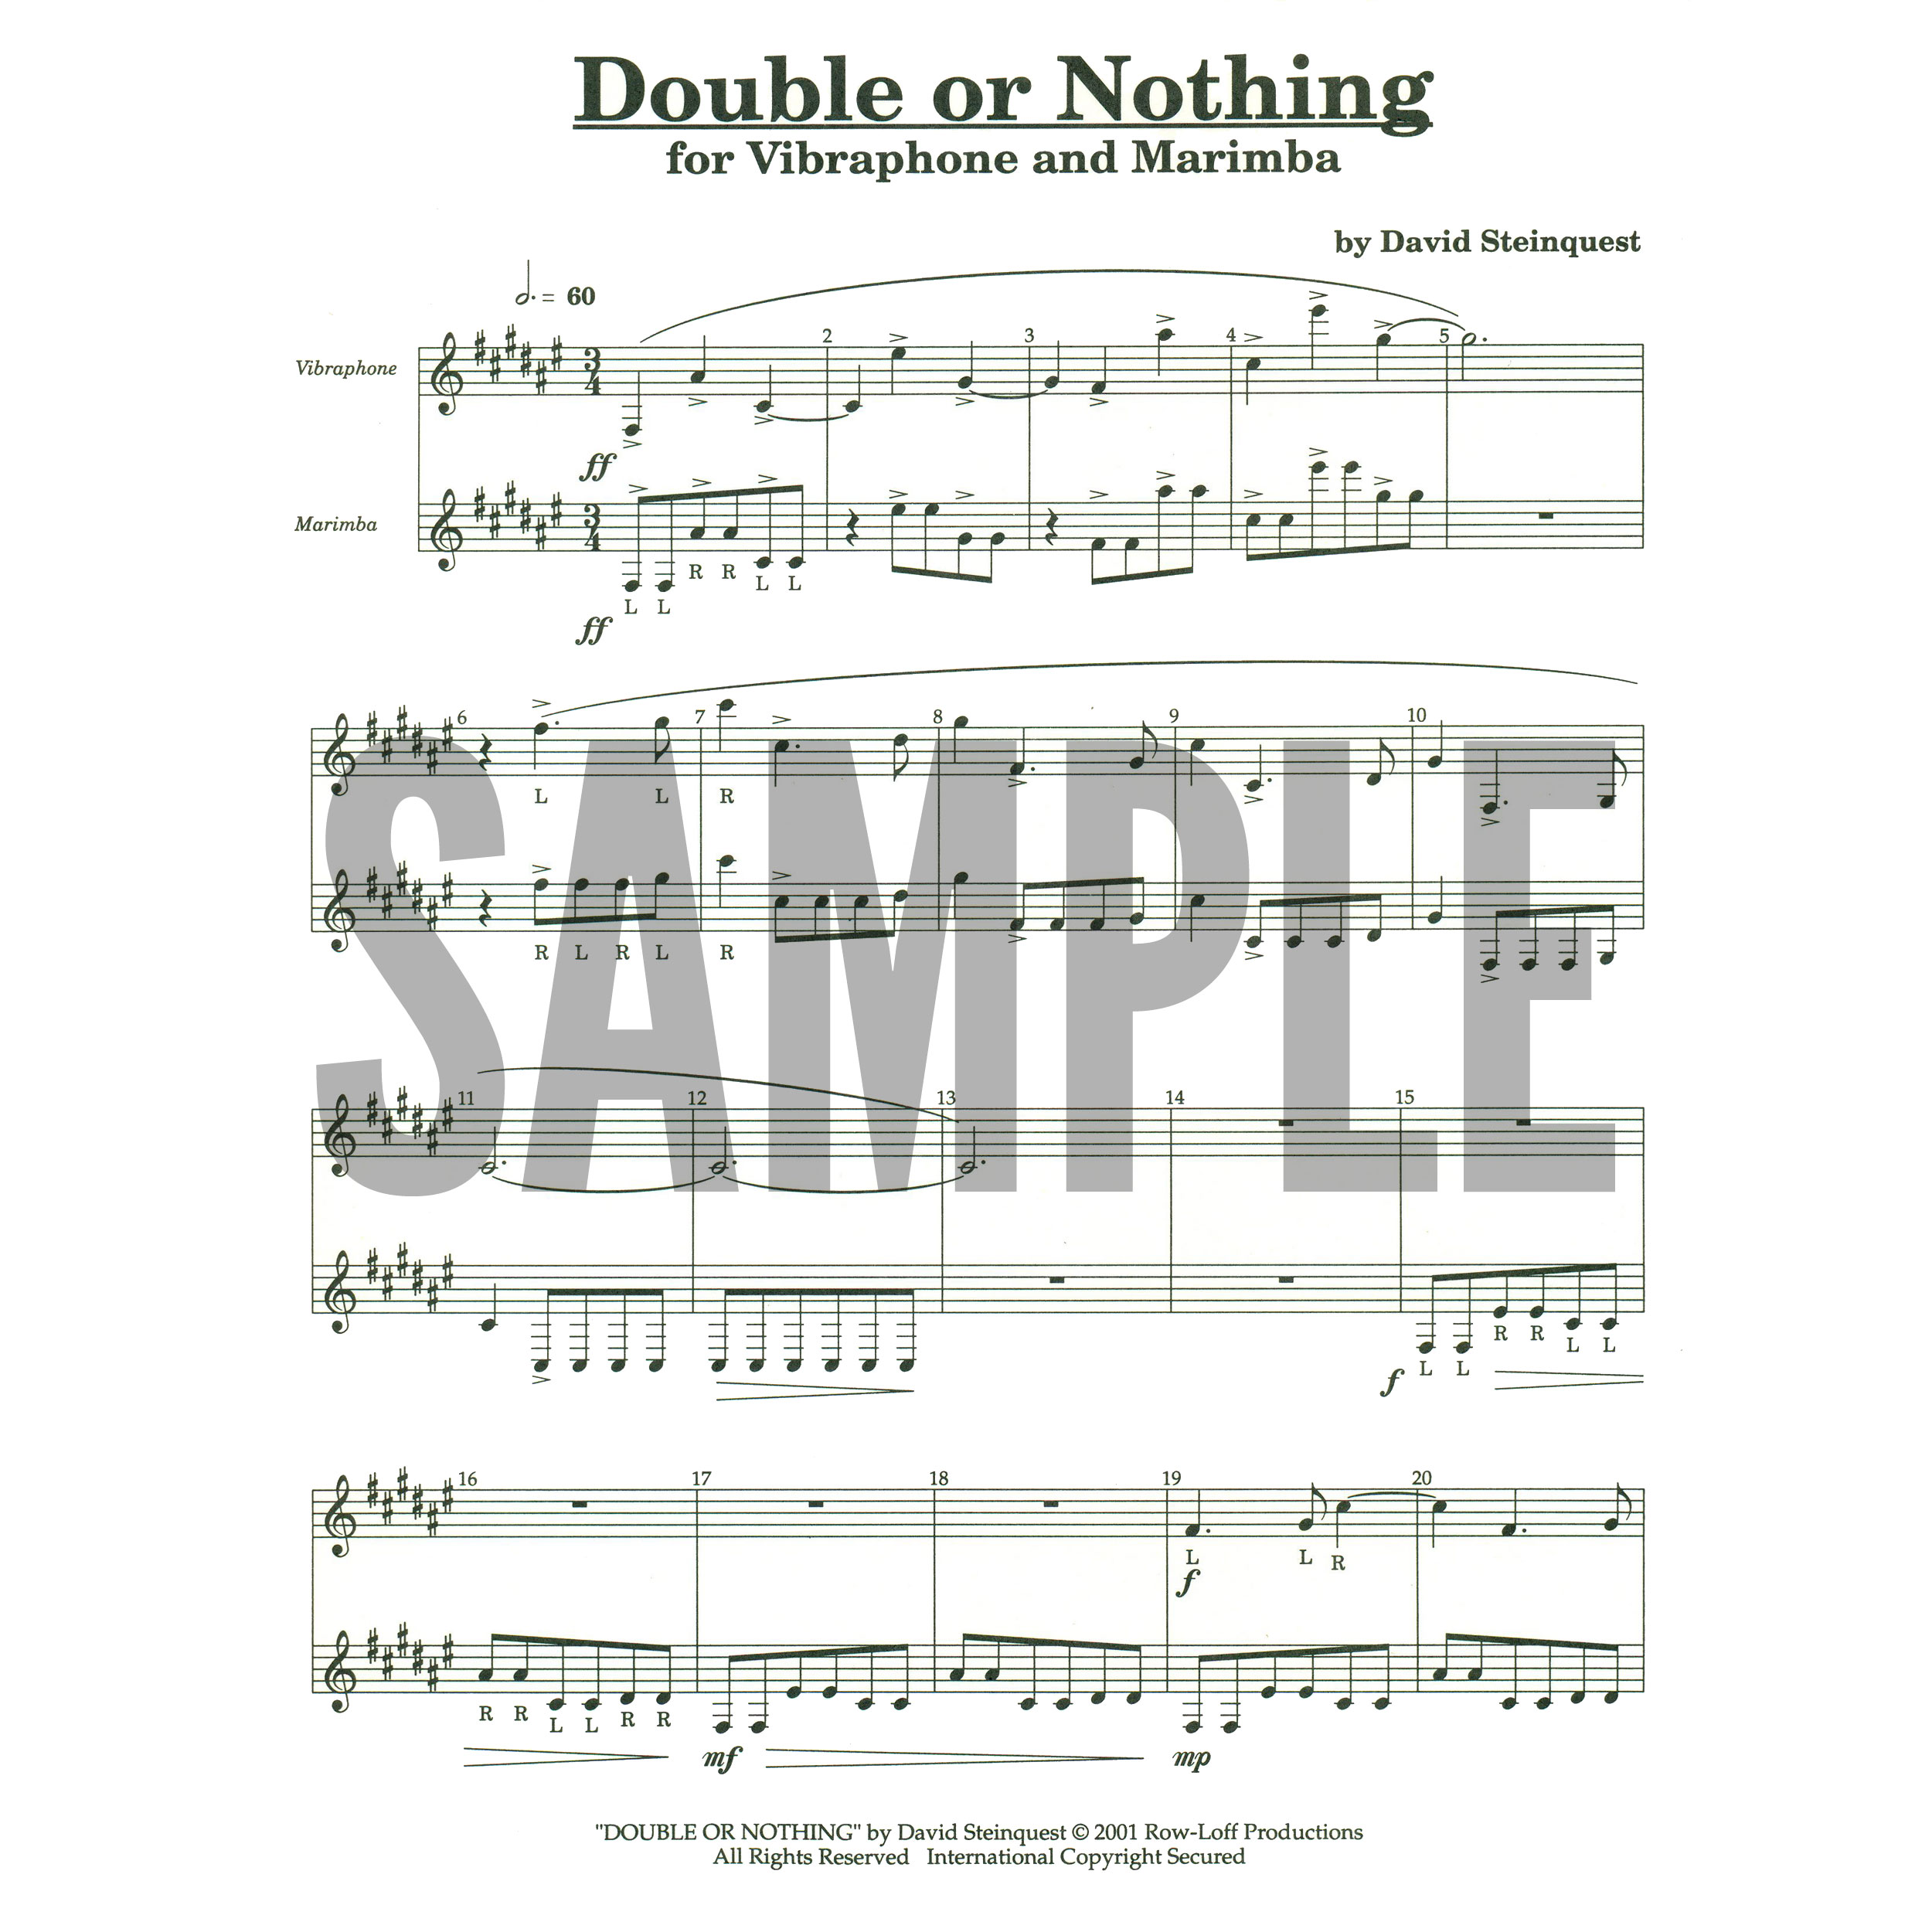 Double or Nothing by David Steinquest